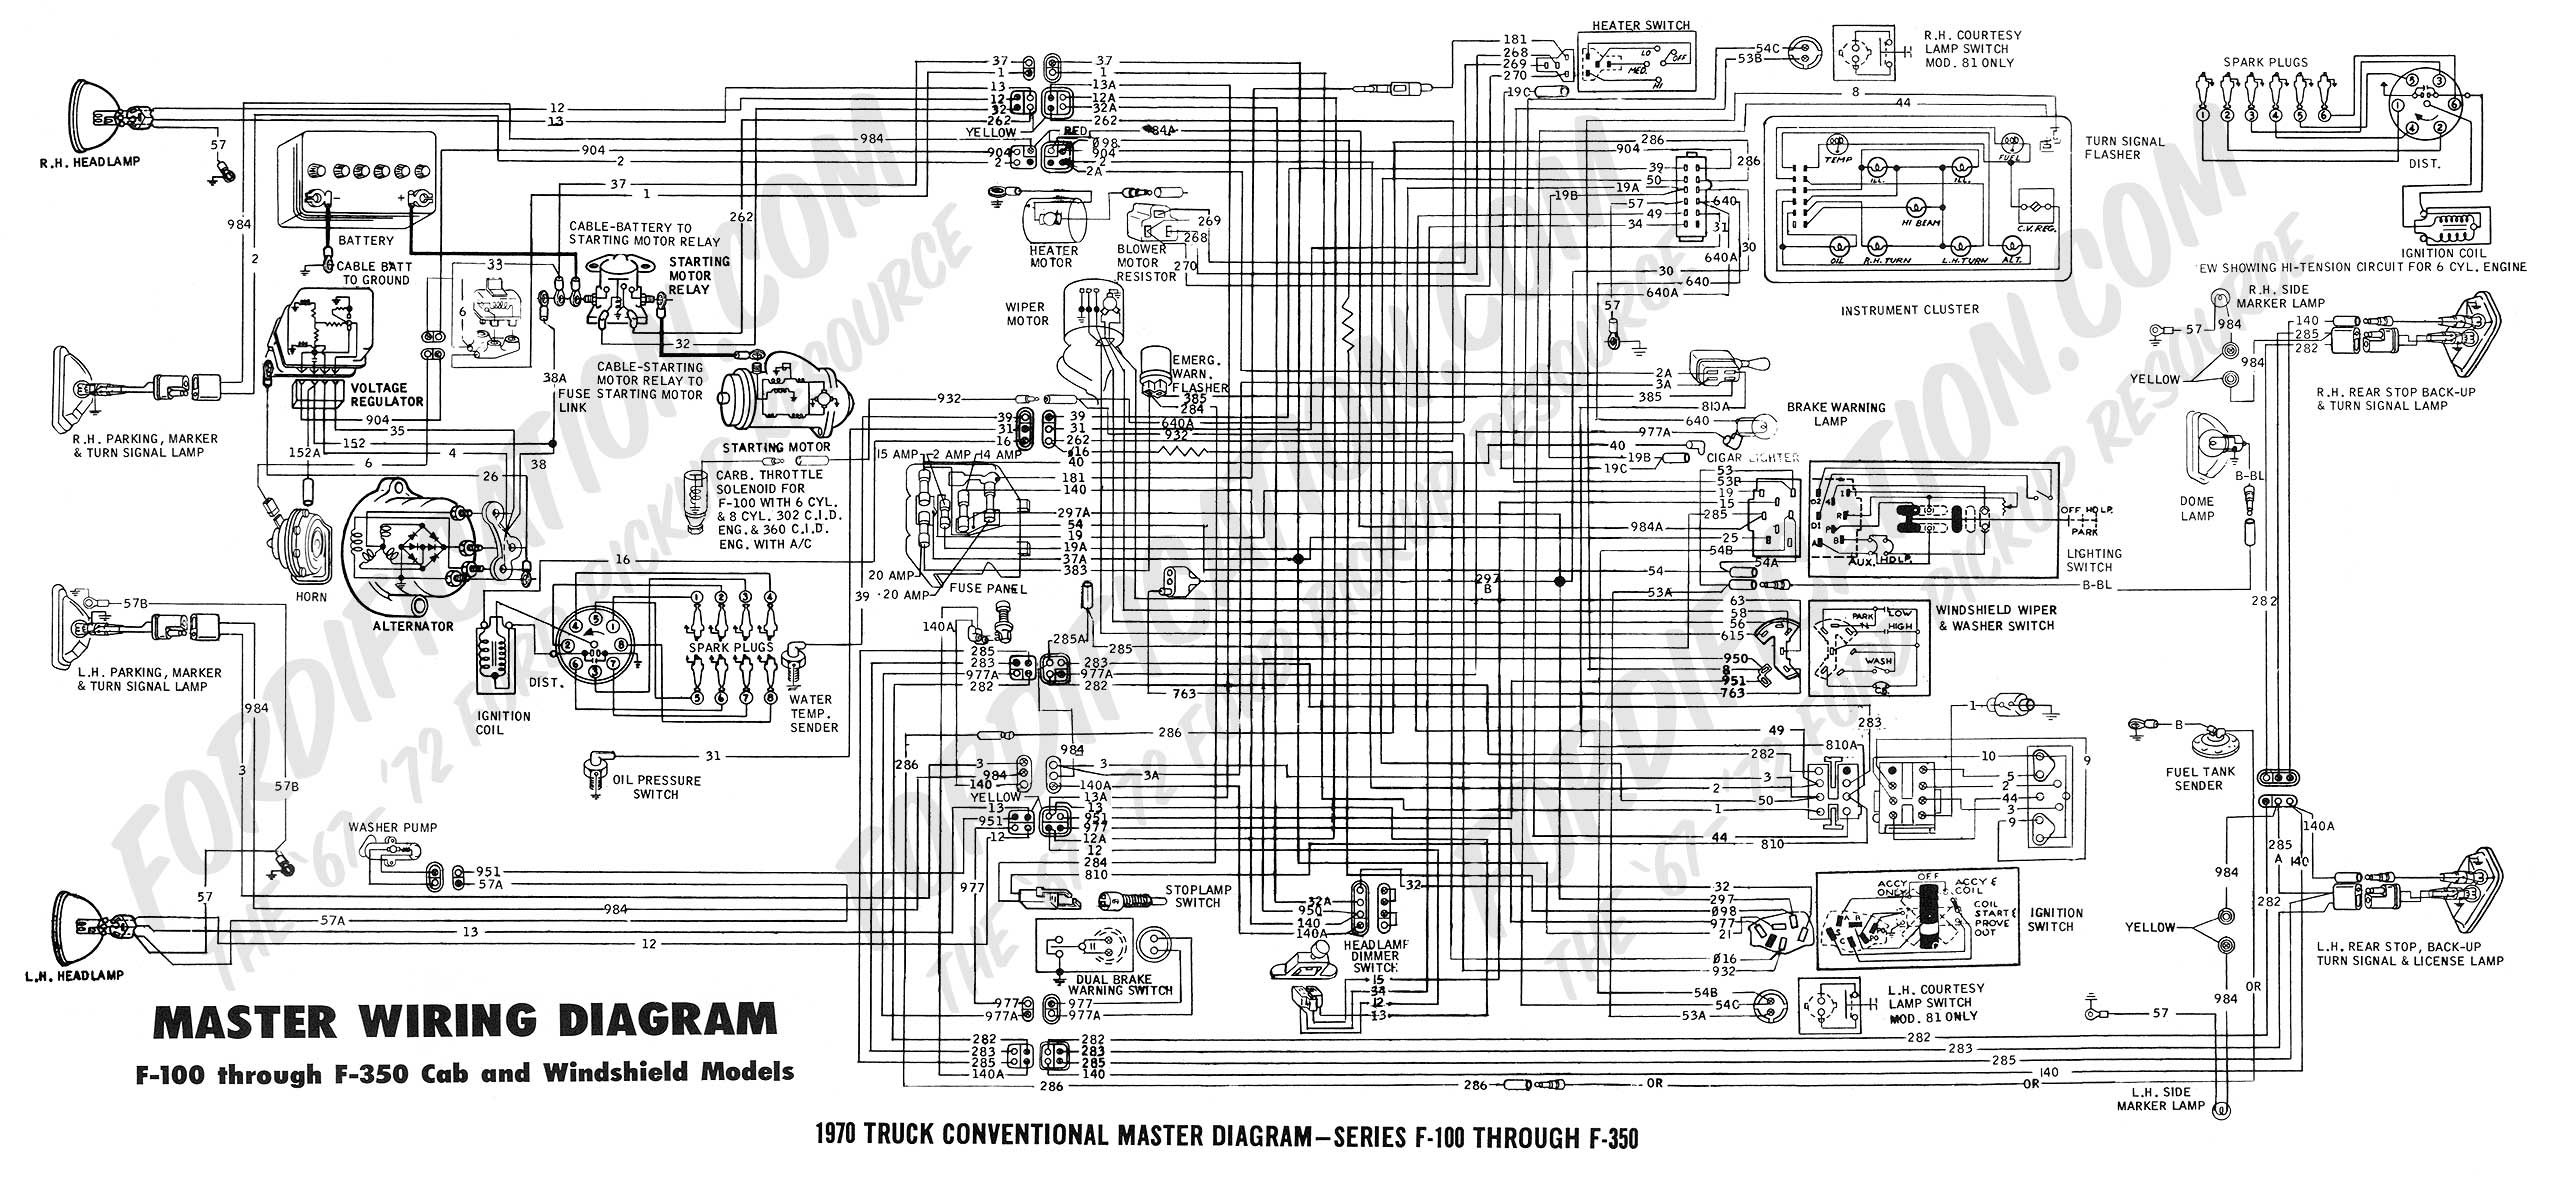 2005 freightliner columbia radio wiring diagram images wiring wiring diagram along freightliner m2 headlight as